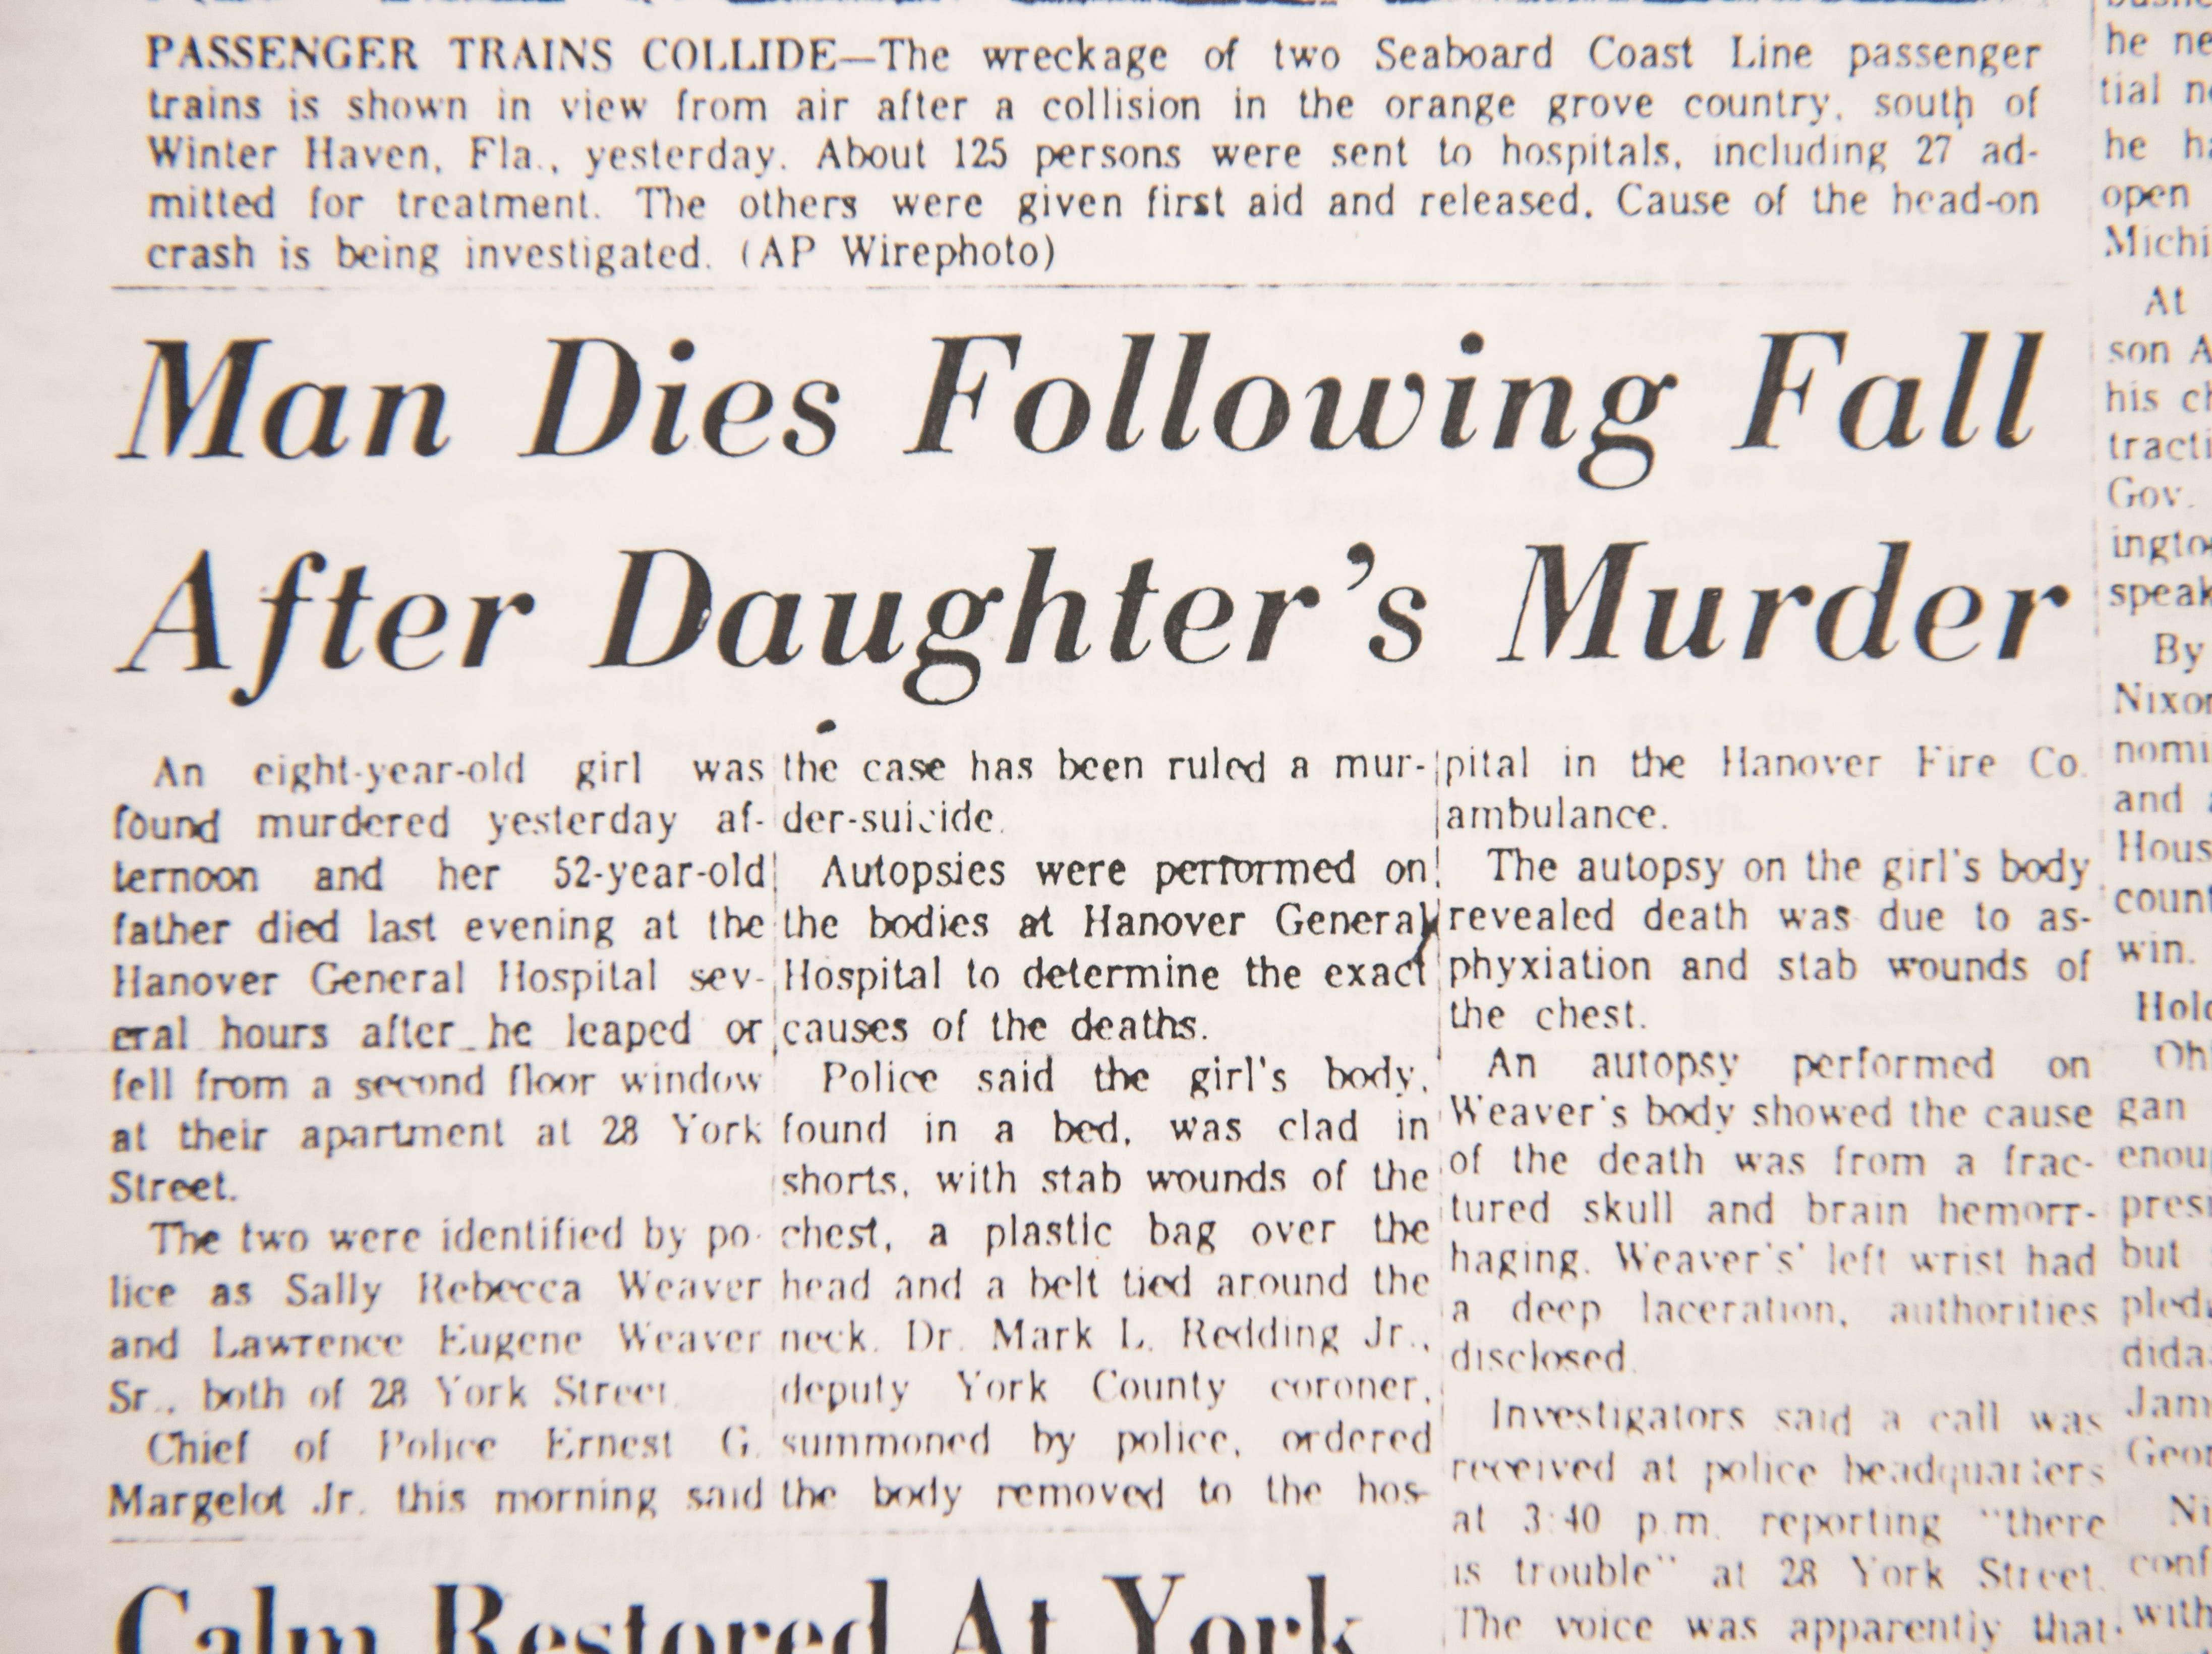 A newspaper clipping from 1968 talks about the death of Sally Weaver.